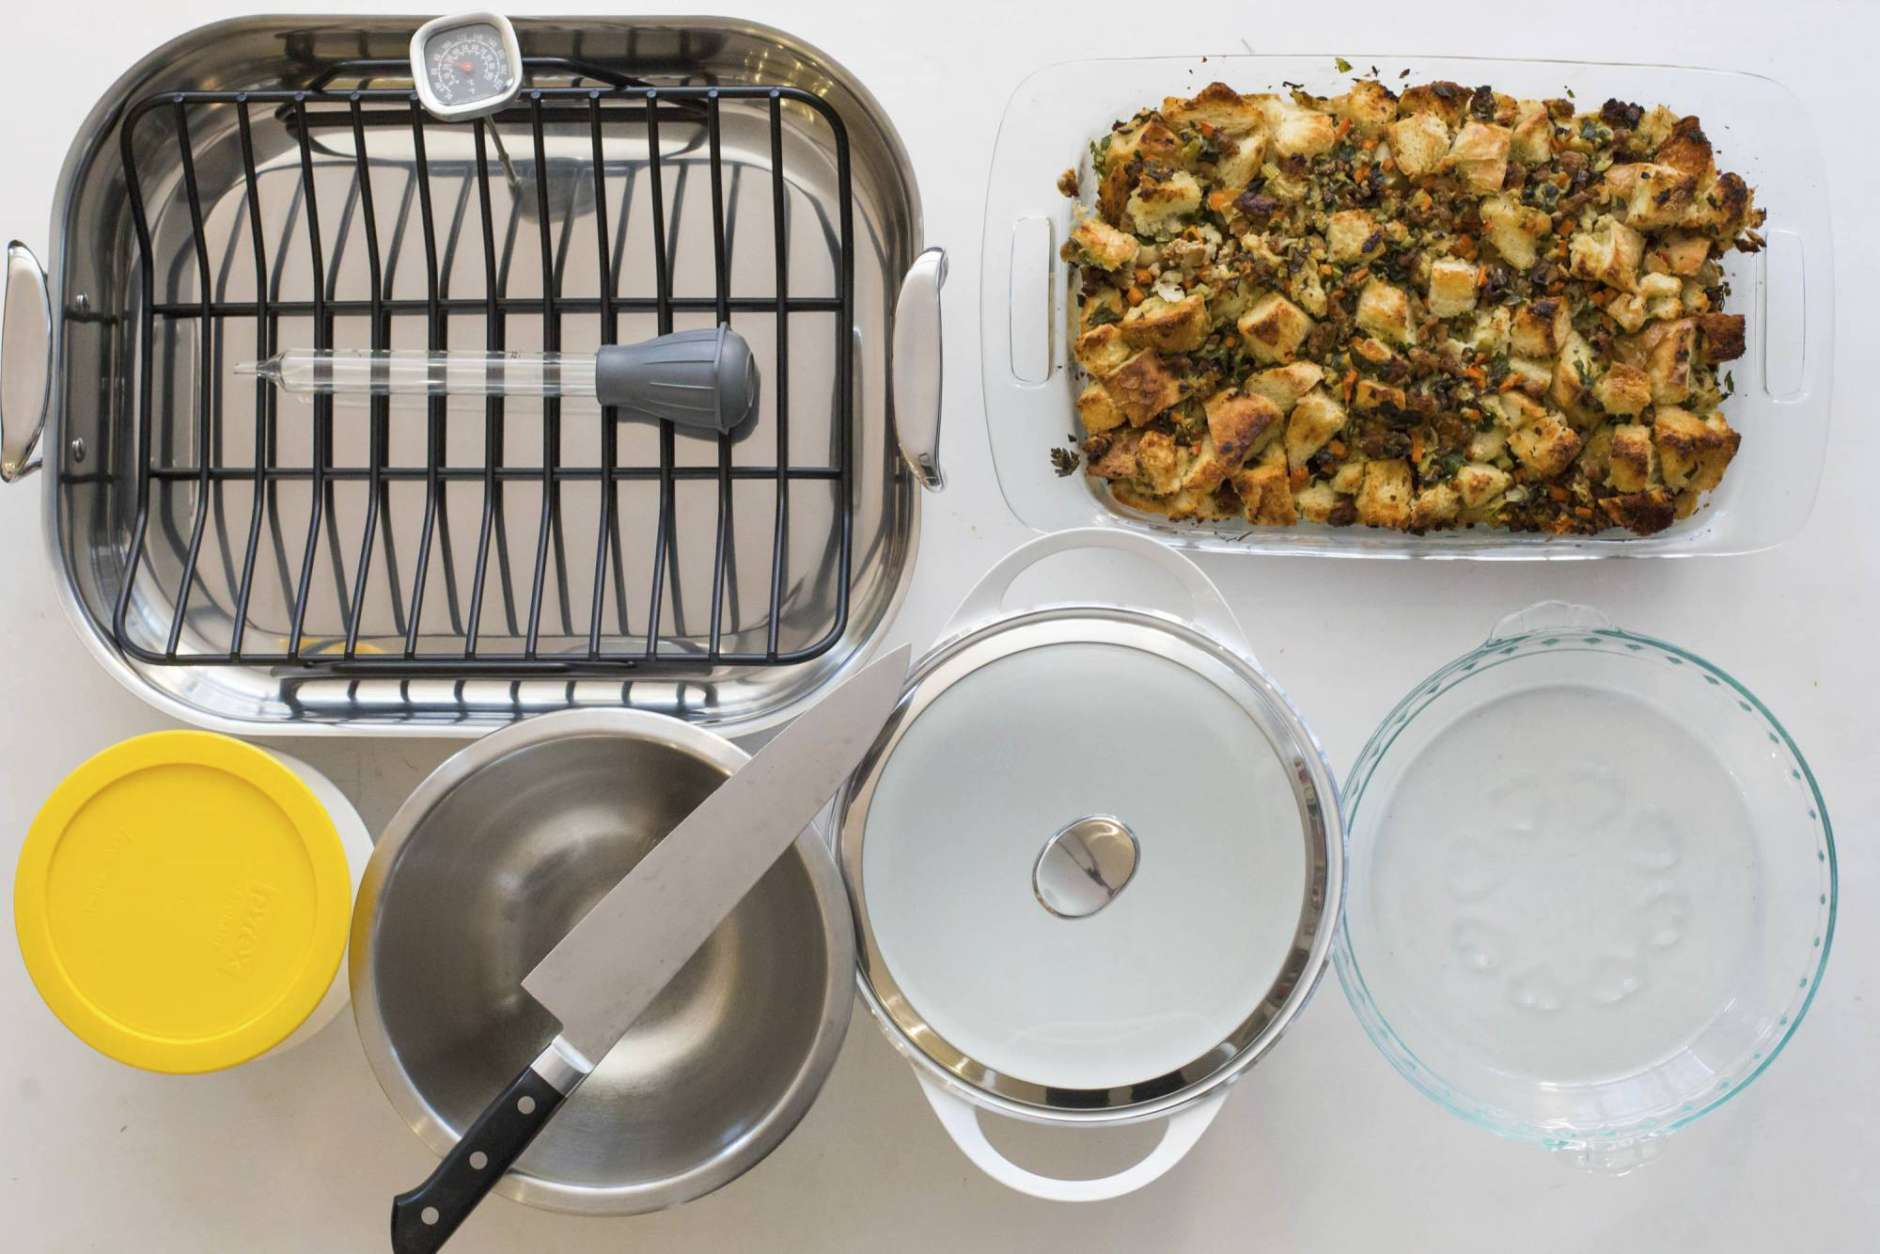 This Oct. 16, 2017 photo provided by Katie Workman shows some must have Thanksgiving tools in New York. Pictured are a roasting oasting pan with rack, baster, instant thermometer, glass baking dish, glass pie plate, casserole pot, mixing bowl, chef's knife and storage containers. (Sarah Crowder/Katie Workman via AP)